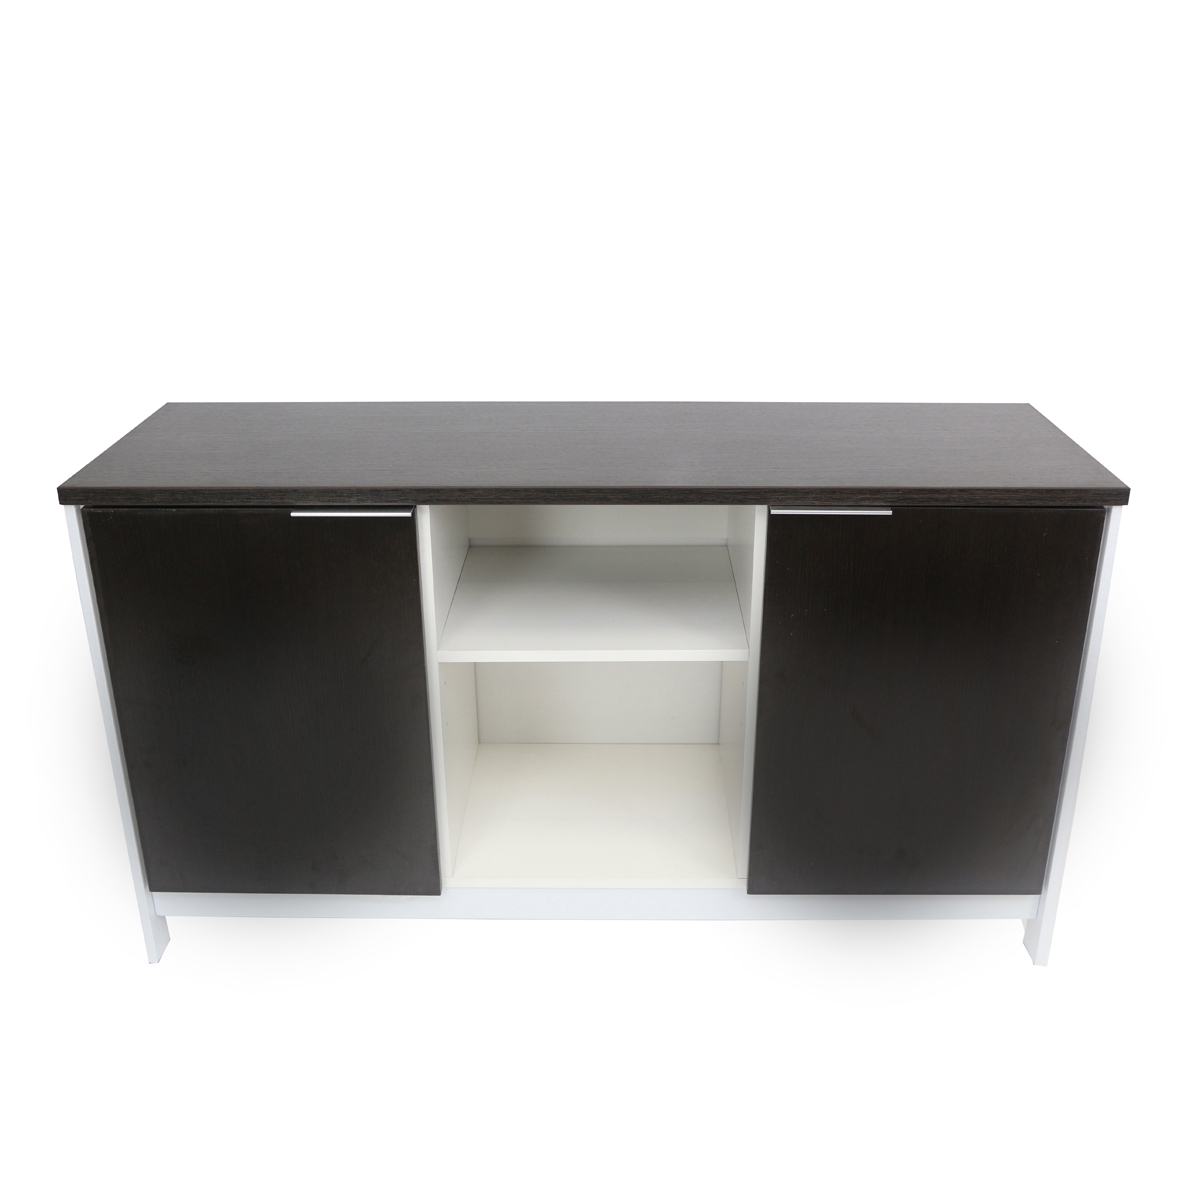 Madrid Server Buffet For Modern Dining Room Storage – Black And White Within Modern Black Storage Buffets (View 23 of 30)